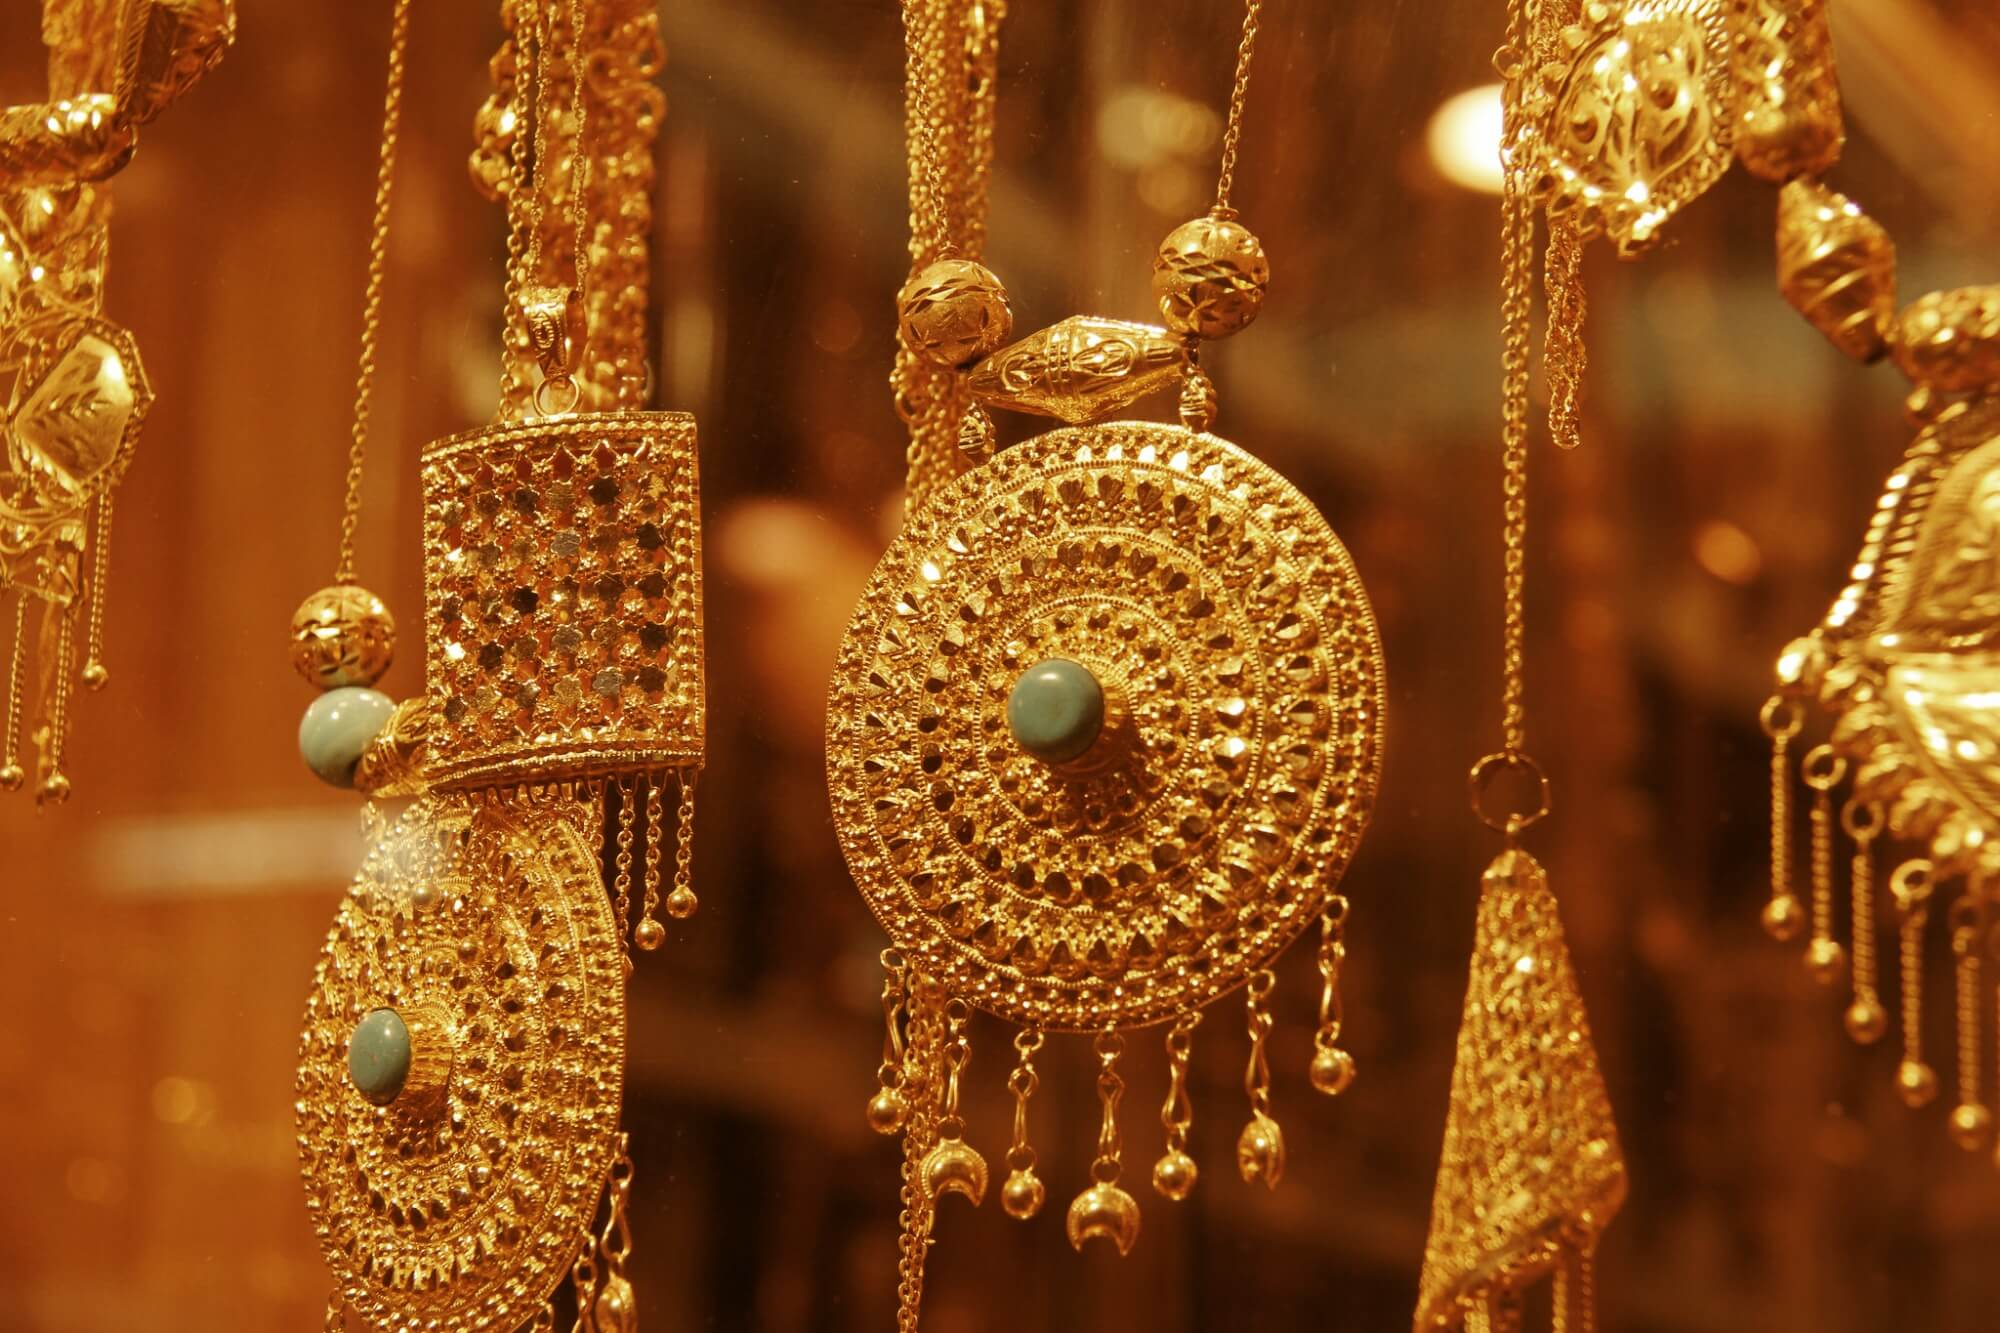 Gold Souk - CityGuideTour - augmented reality mobile app for tourists